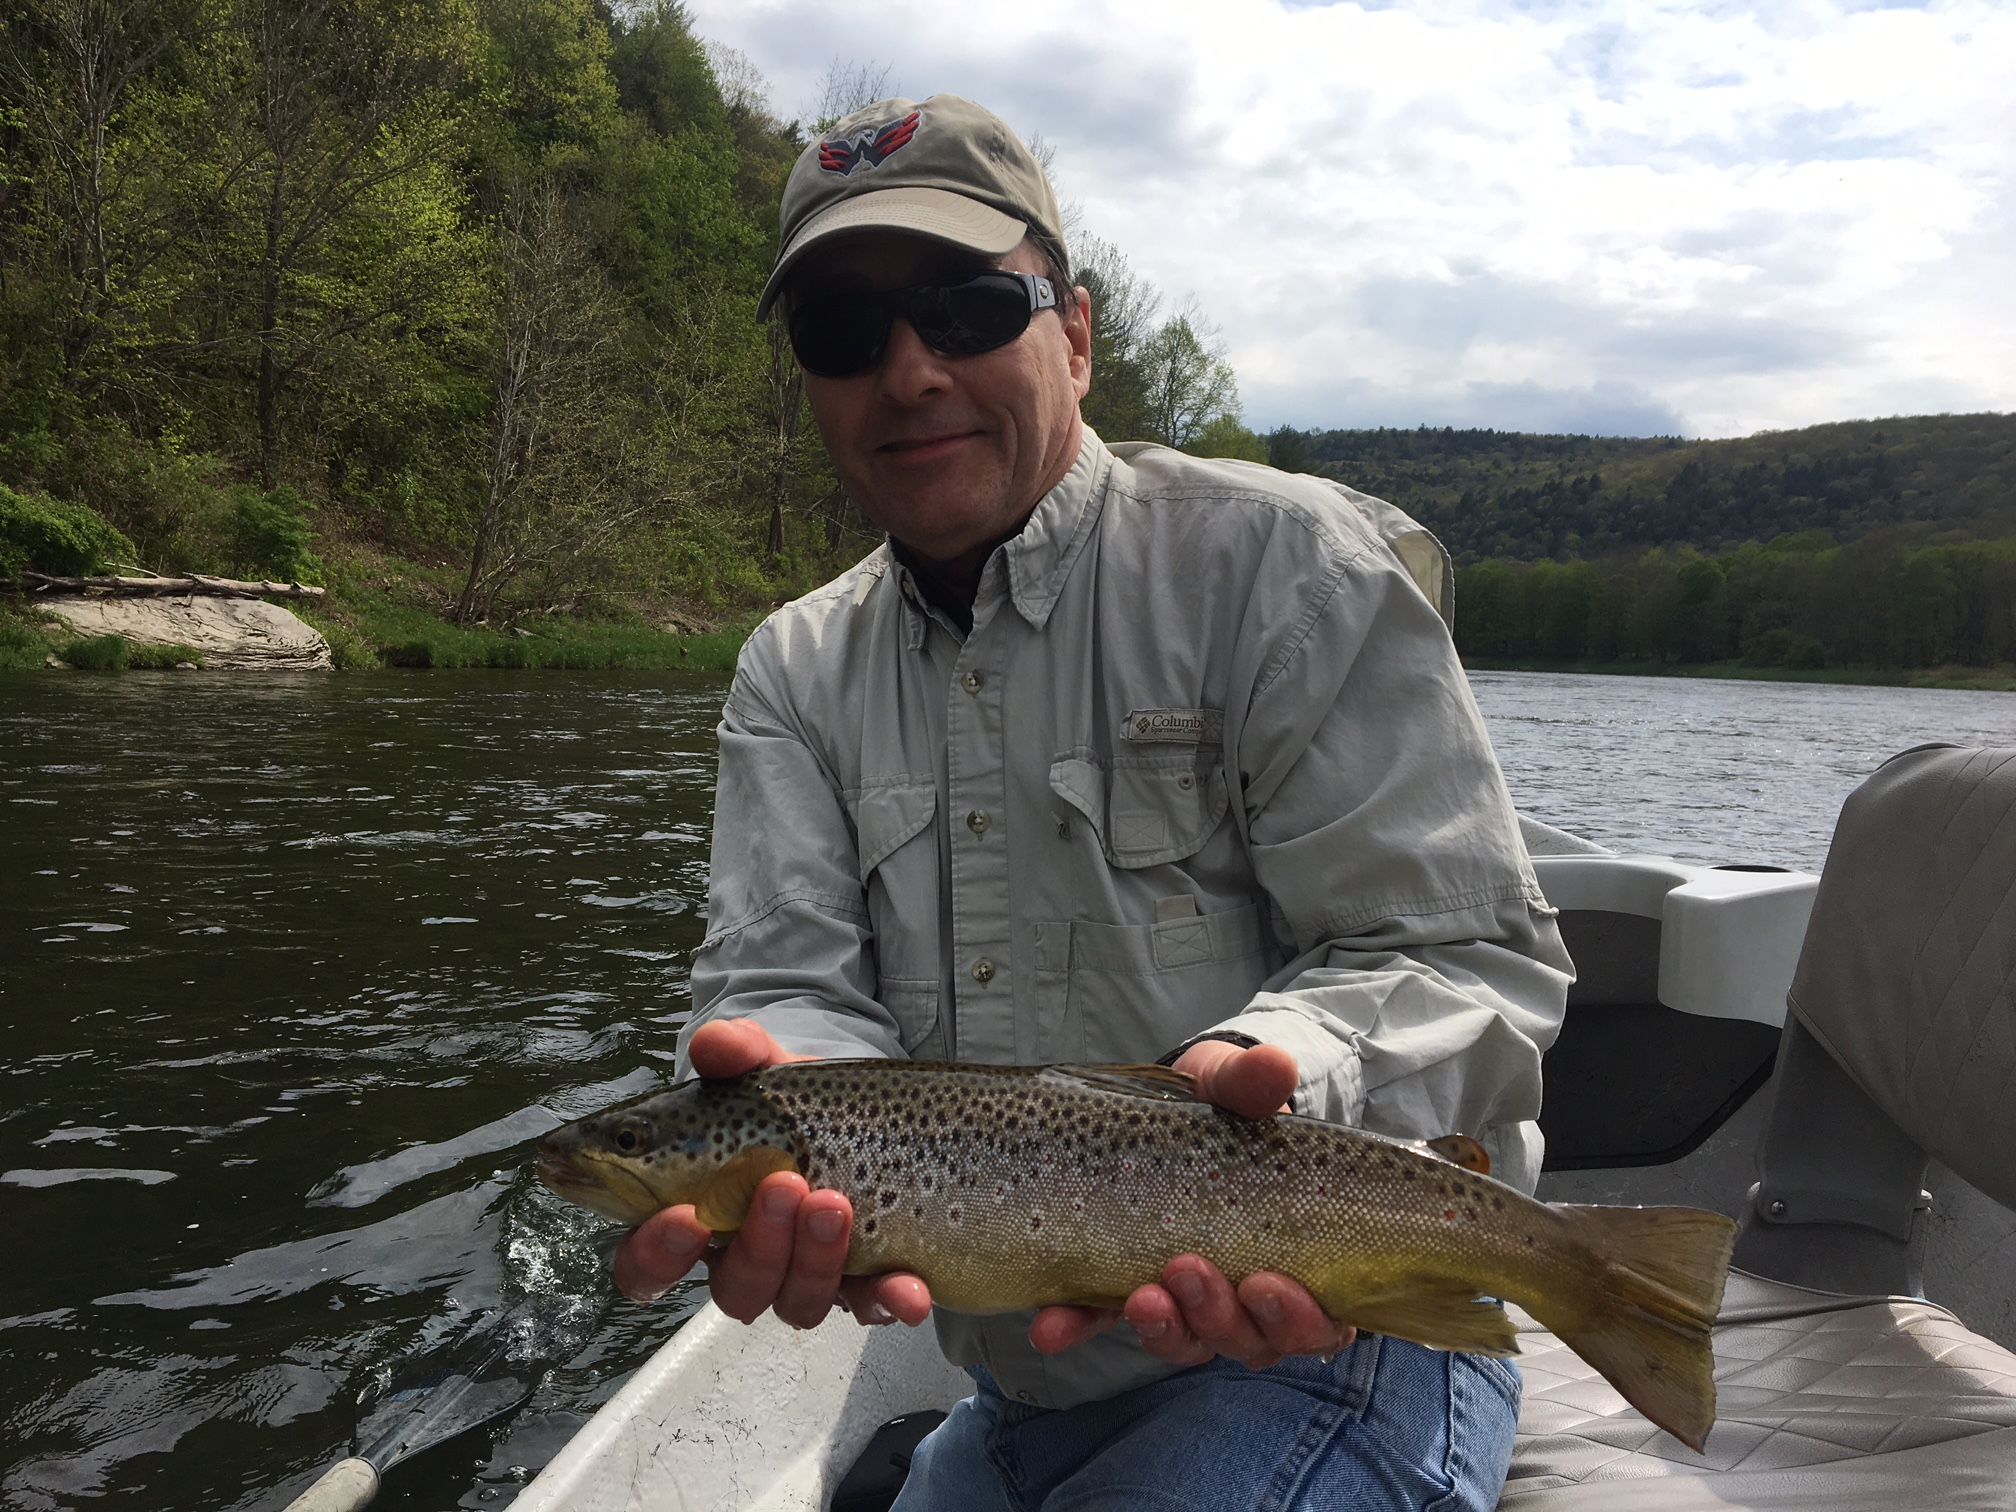 "5/17/16 Rich B. Getting it done with the fly rod. 18"" Brown trout."